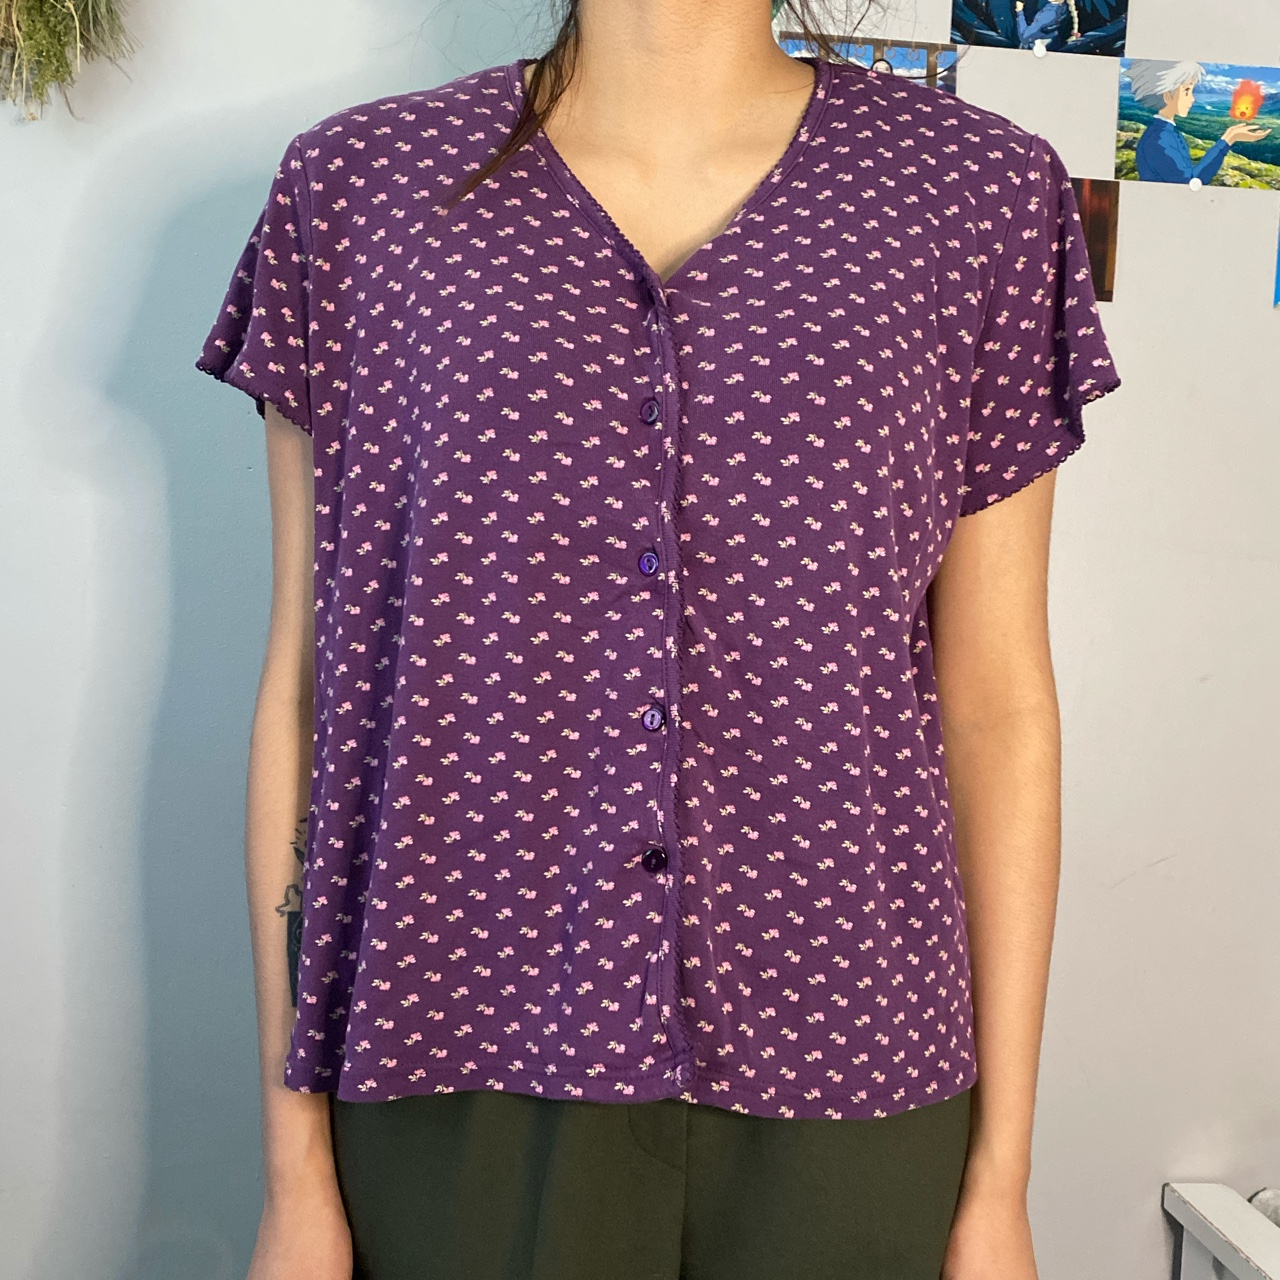 Product Image 1 - Floral purple button up top